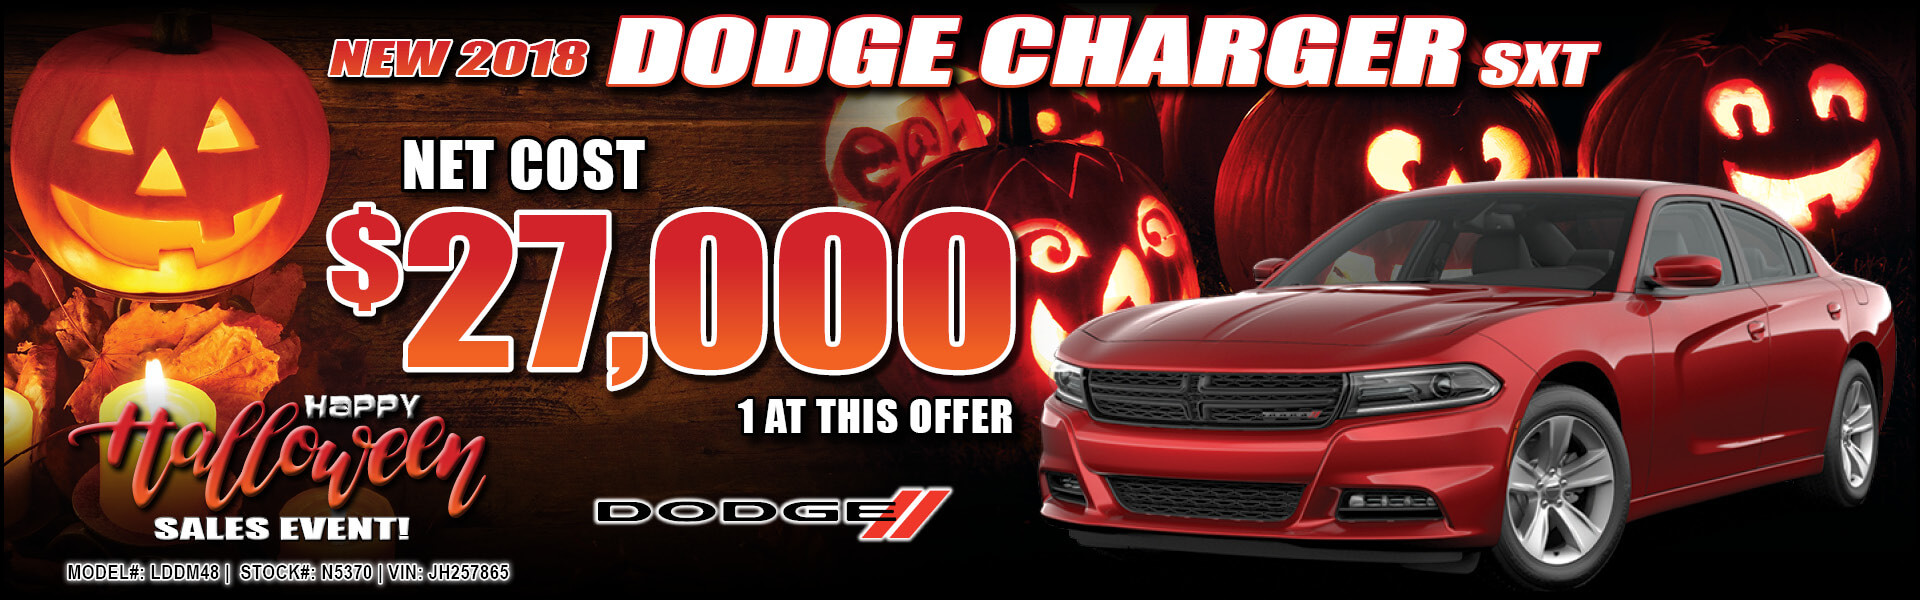 Dodge Charger $27,000